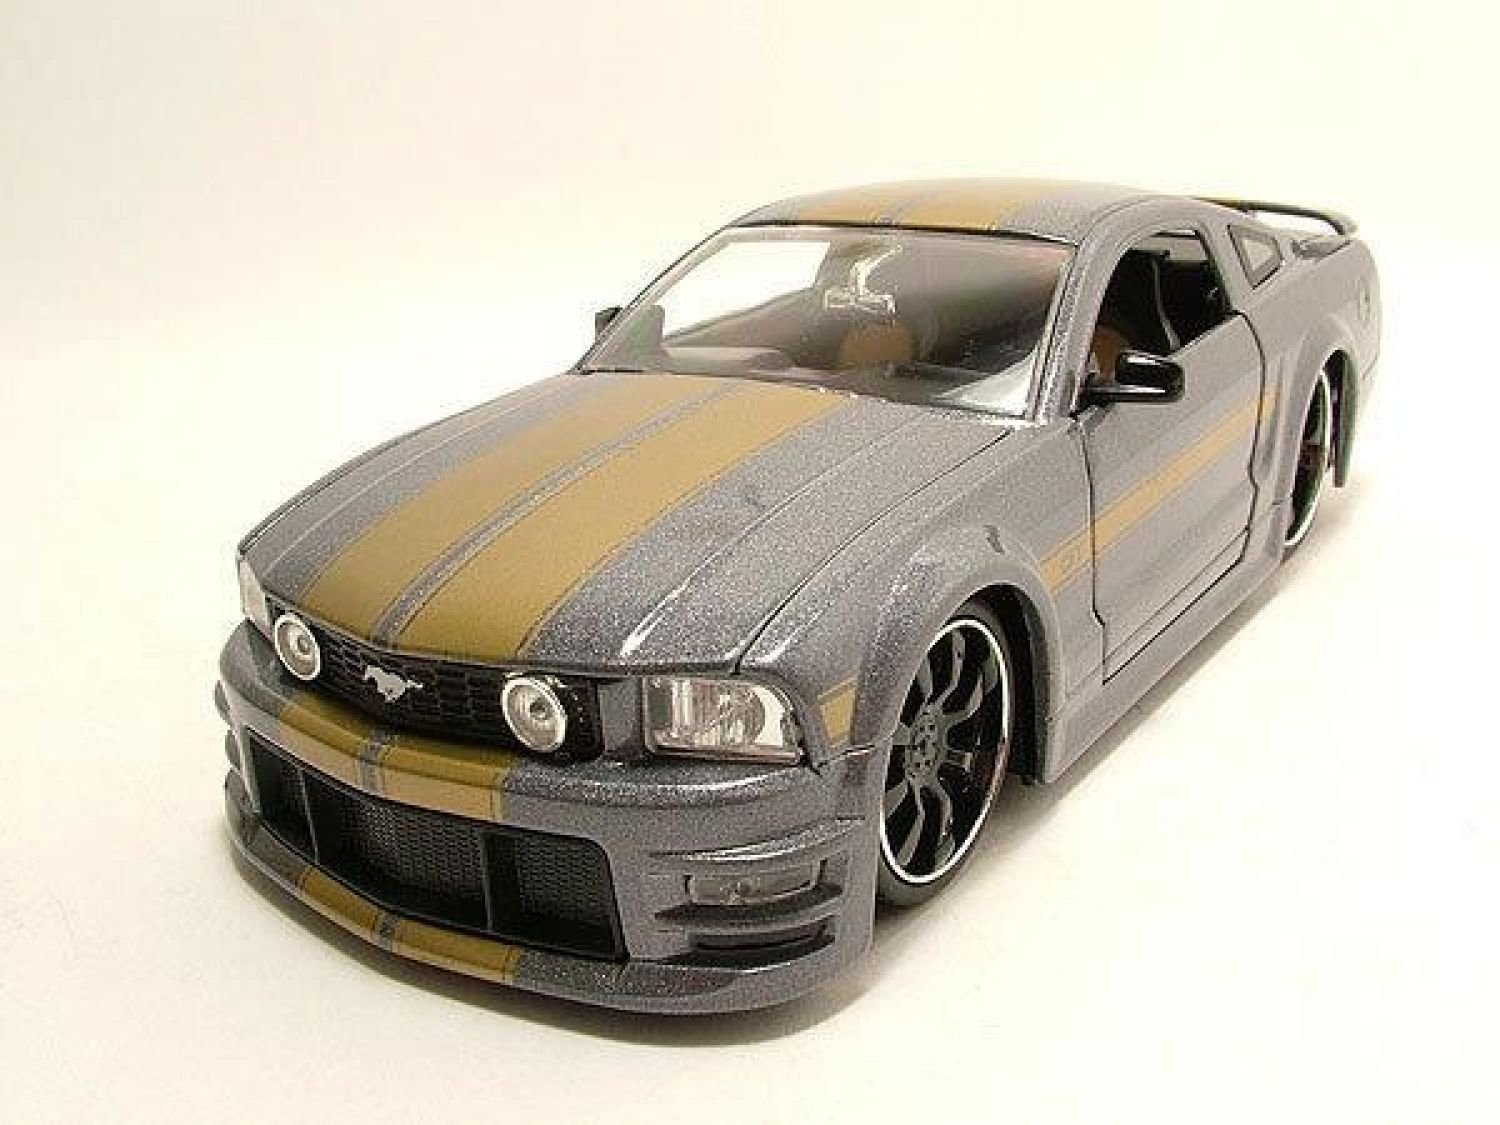 ford mustang gt 2006 grau metallic gold modellauto 1 24. Black Bedroom Furniture Sets. Home Design Ideas